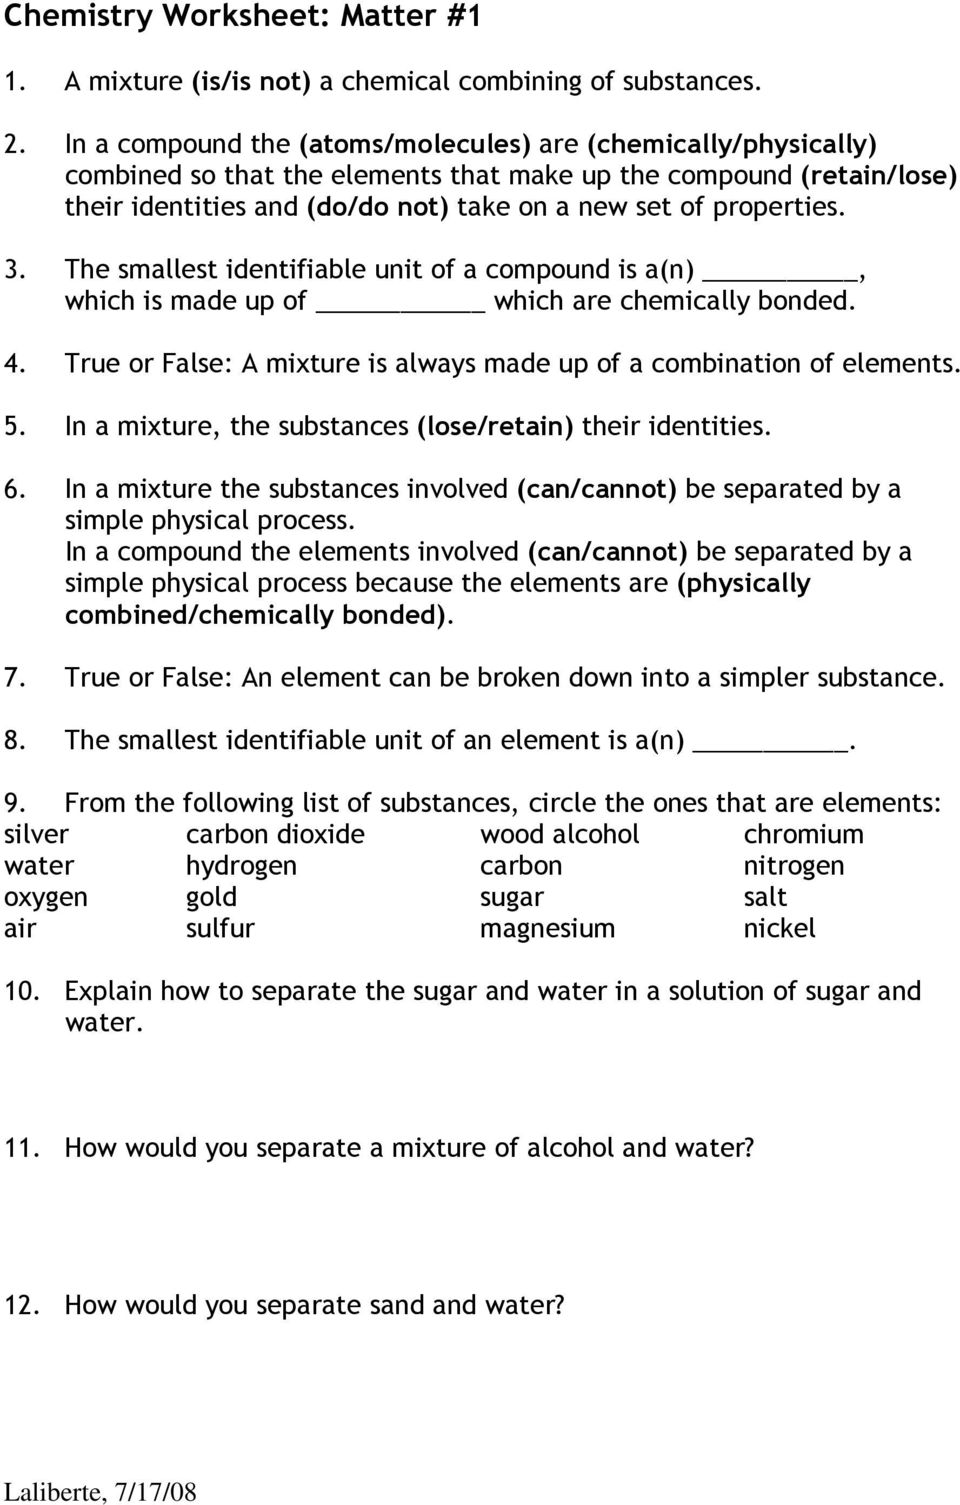 Chemistry worksheet matter 1 answers key